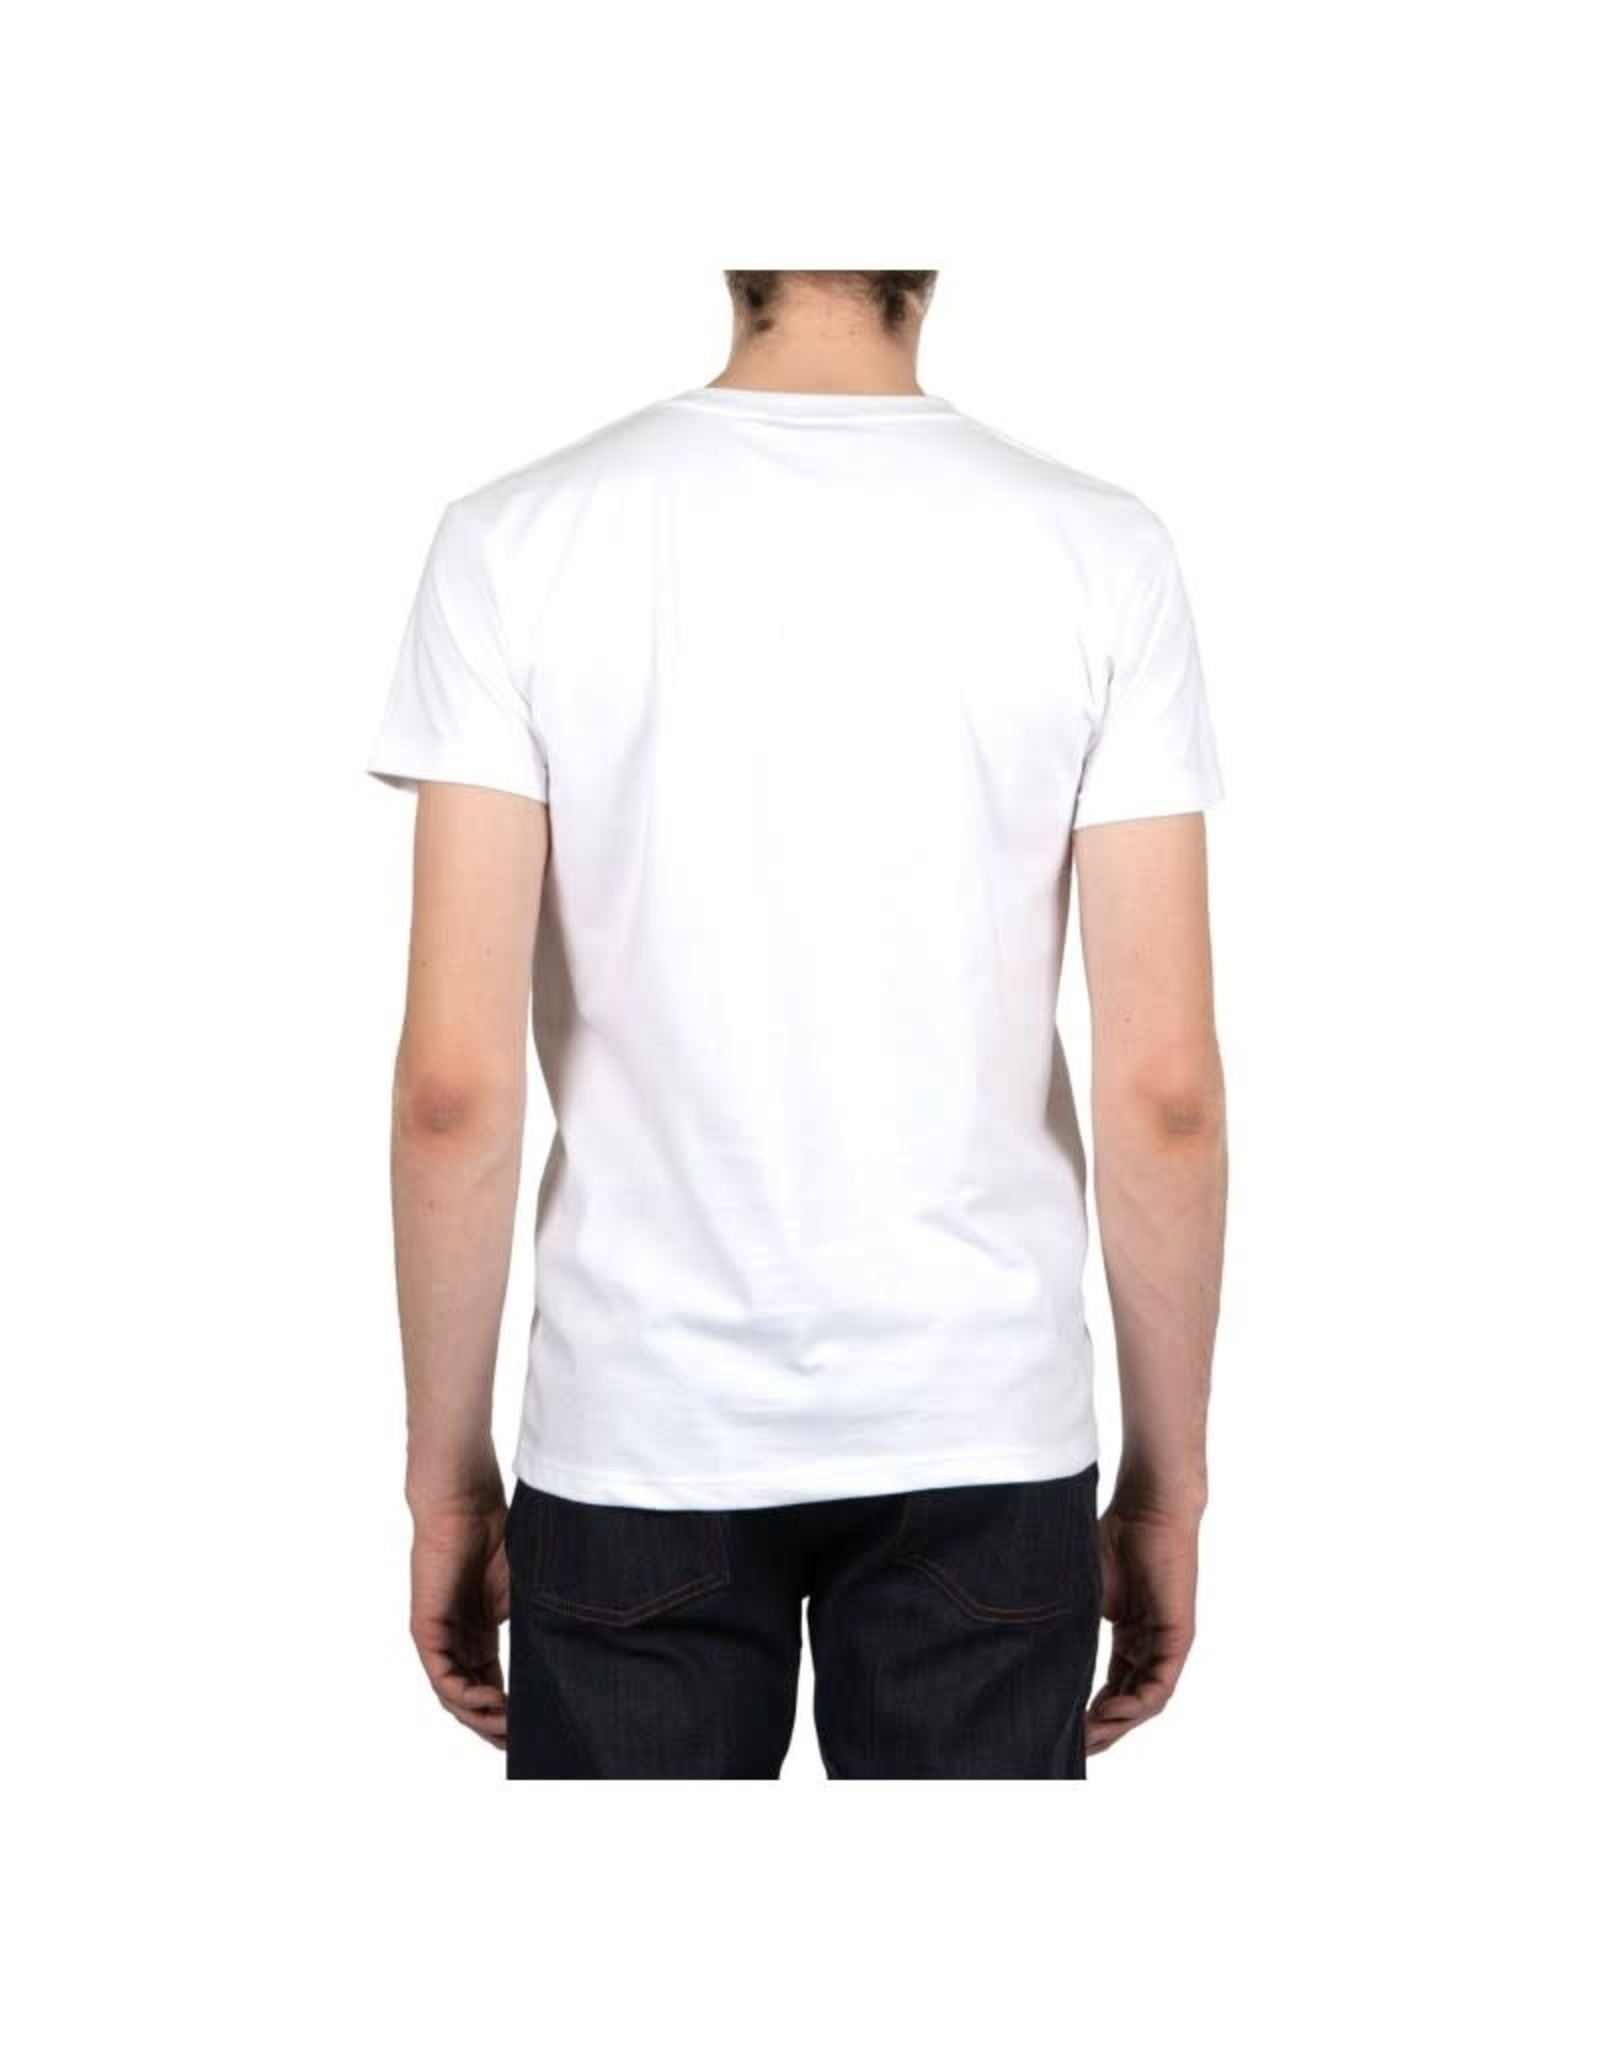 Naked and Famous Pocket Tee PE21 Naked & Famous White Japan Cranes